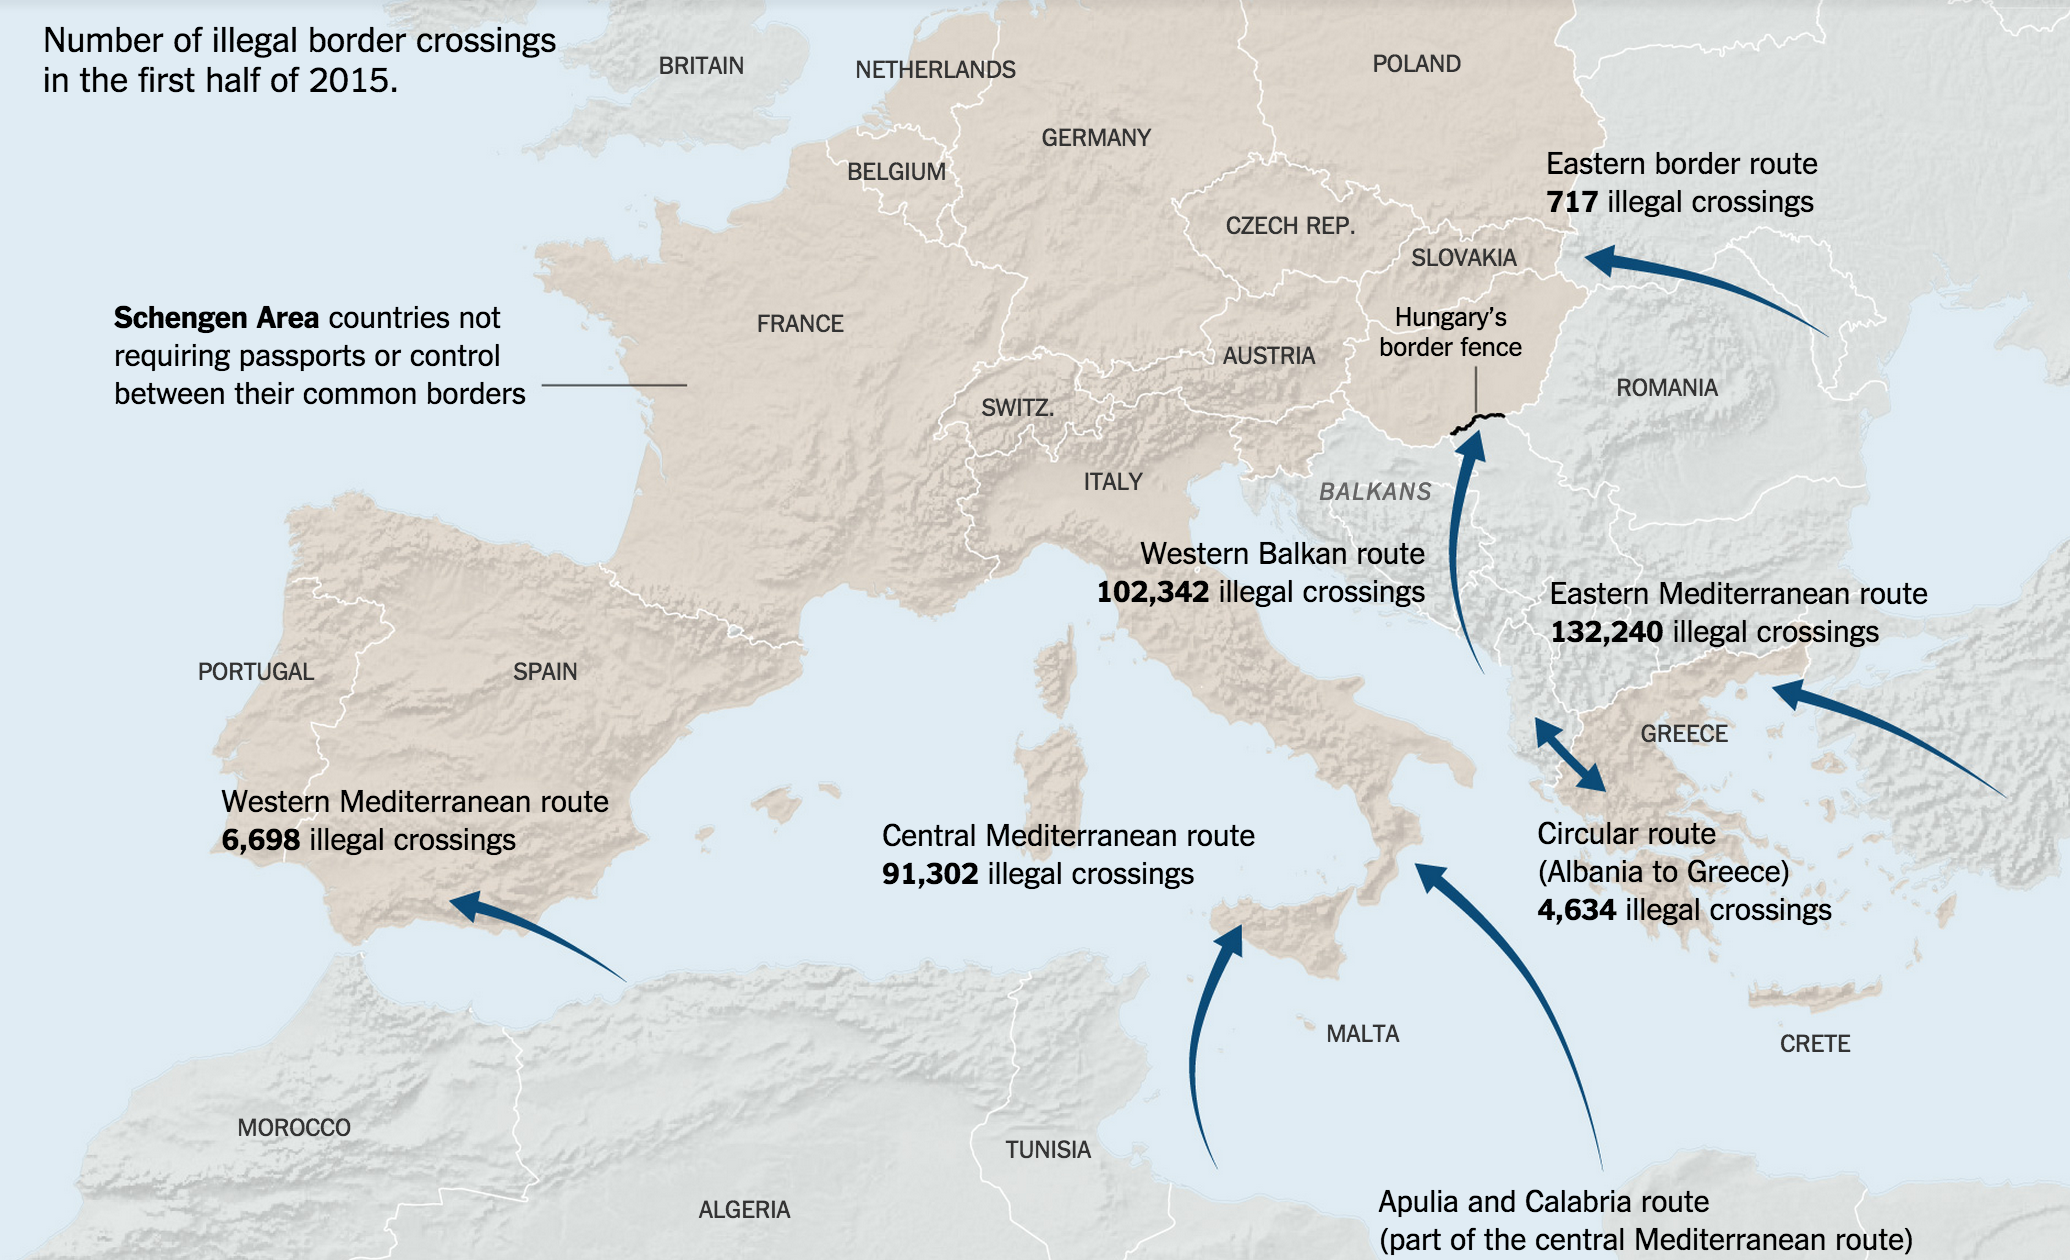 Number of illegal border crossings in the first half of 2015